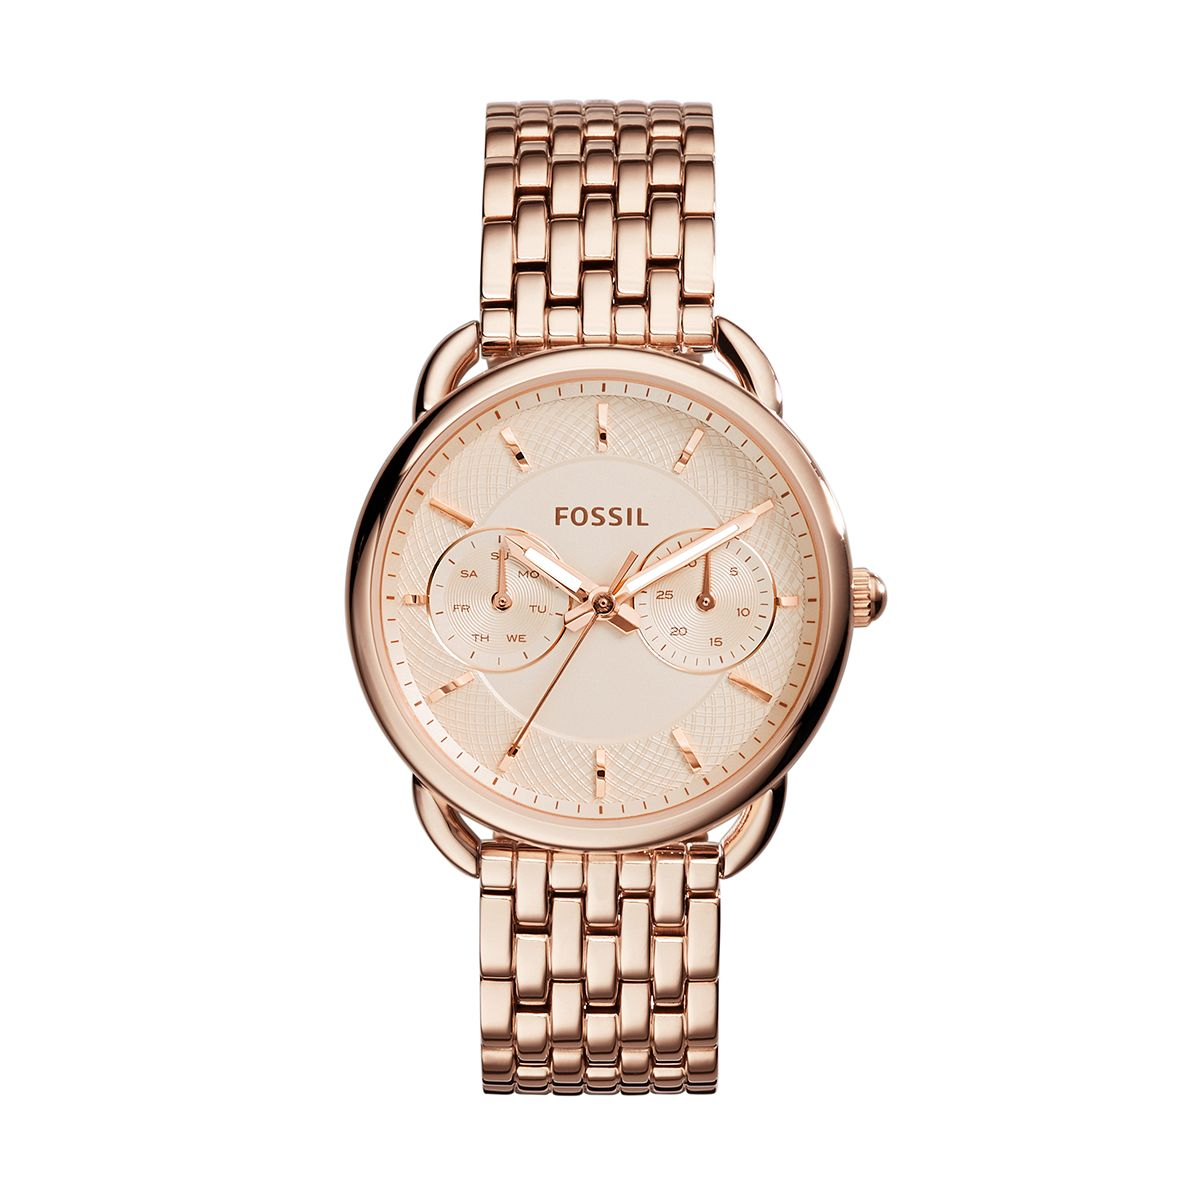 Tailor Ladies Rose Gold Tone Watch / Promotional product